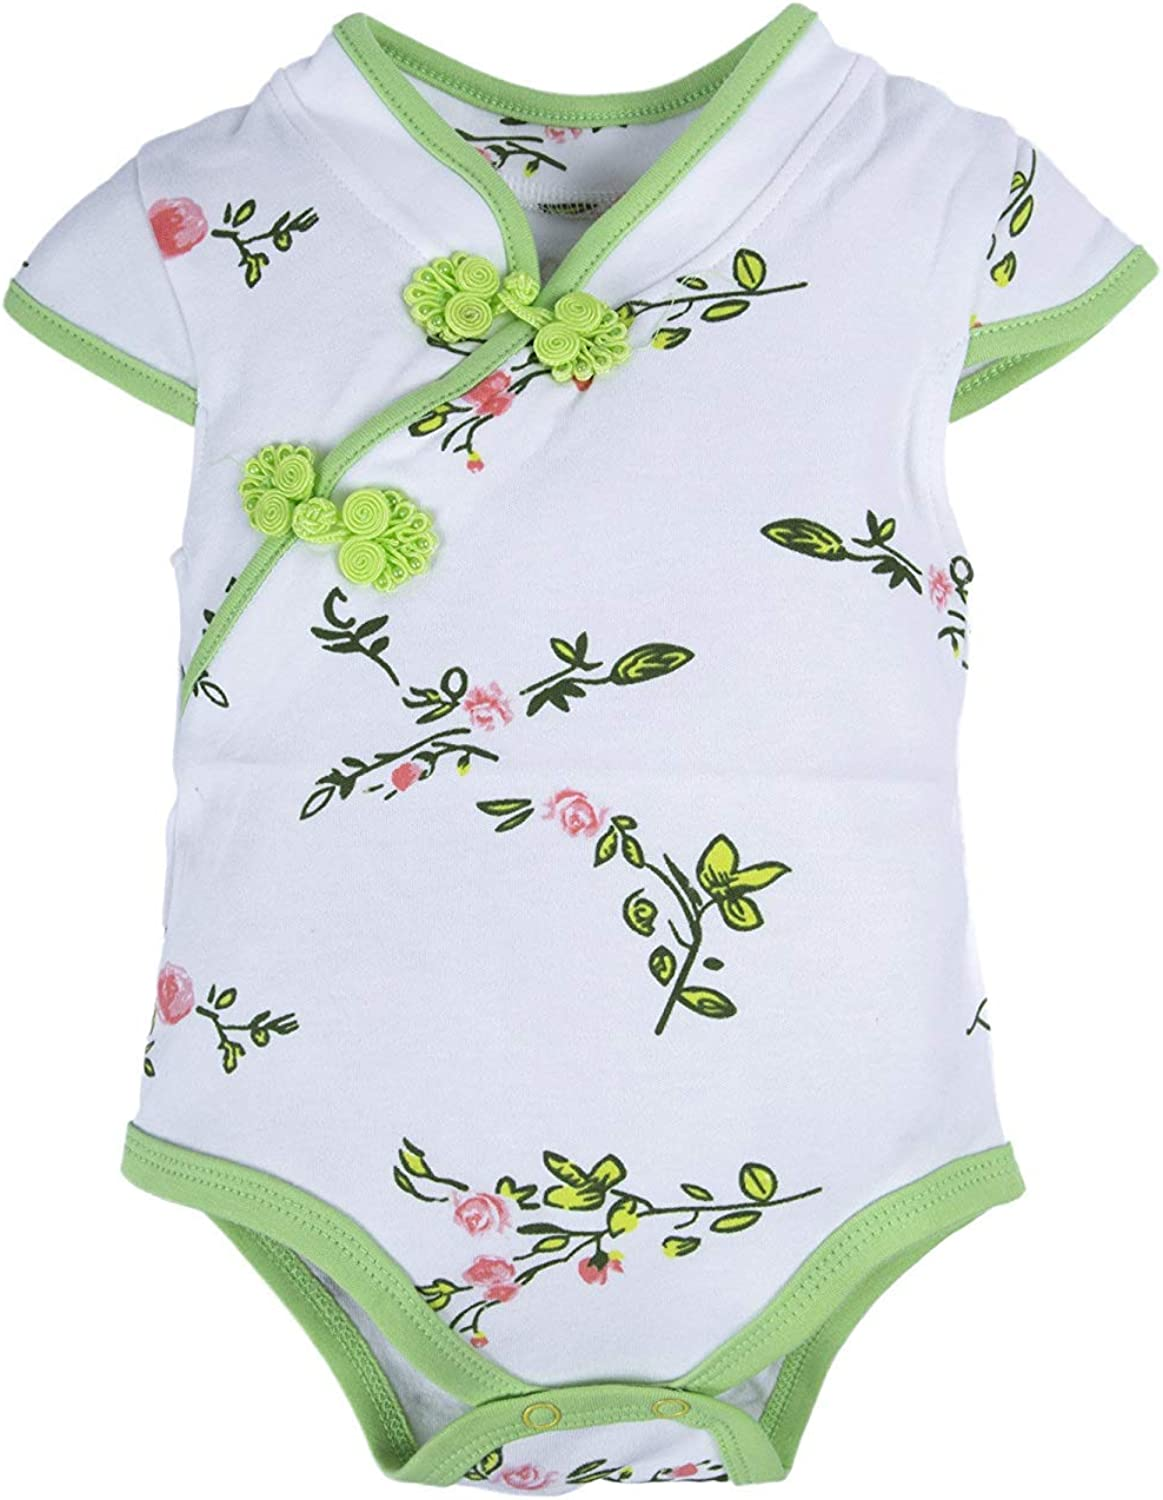 Jackgold Living Clothing Baby Girls 1 Piece Floral Print Short Sleeve Cheongsam Romper